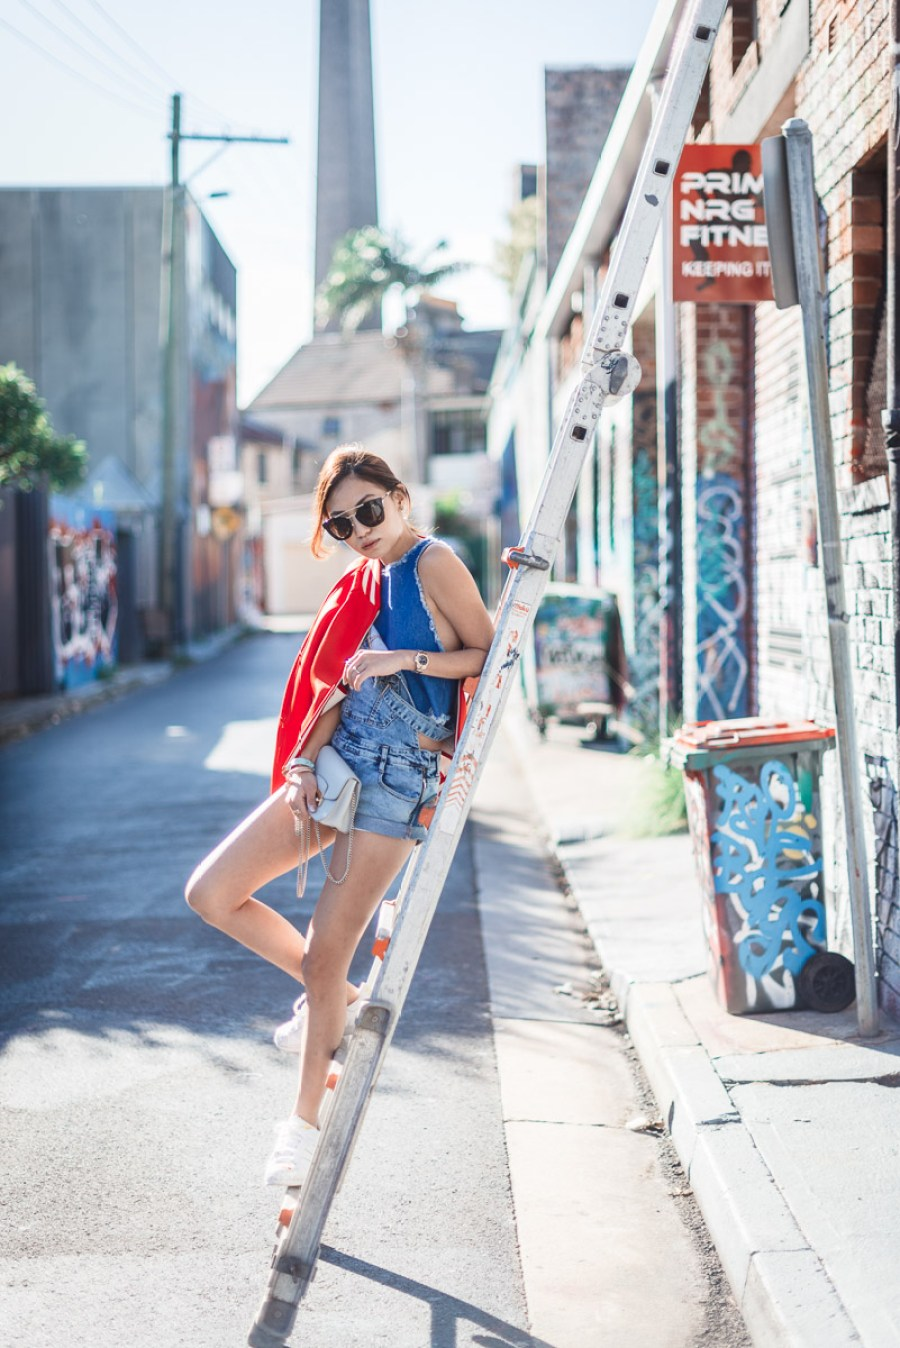 Sydney_Fashion_Travel_Blogger_Photoshoot_Elinlights_Photography_Amanda_Wong_La_Beautiful_Adieu-212